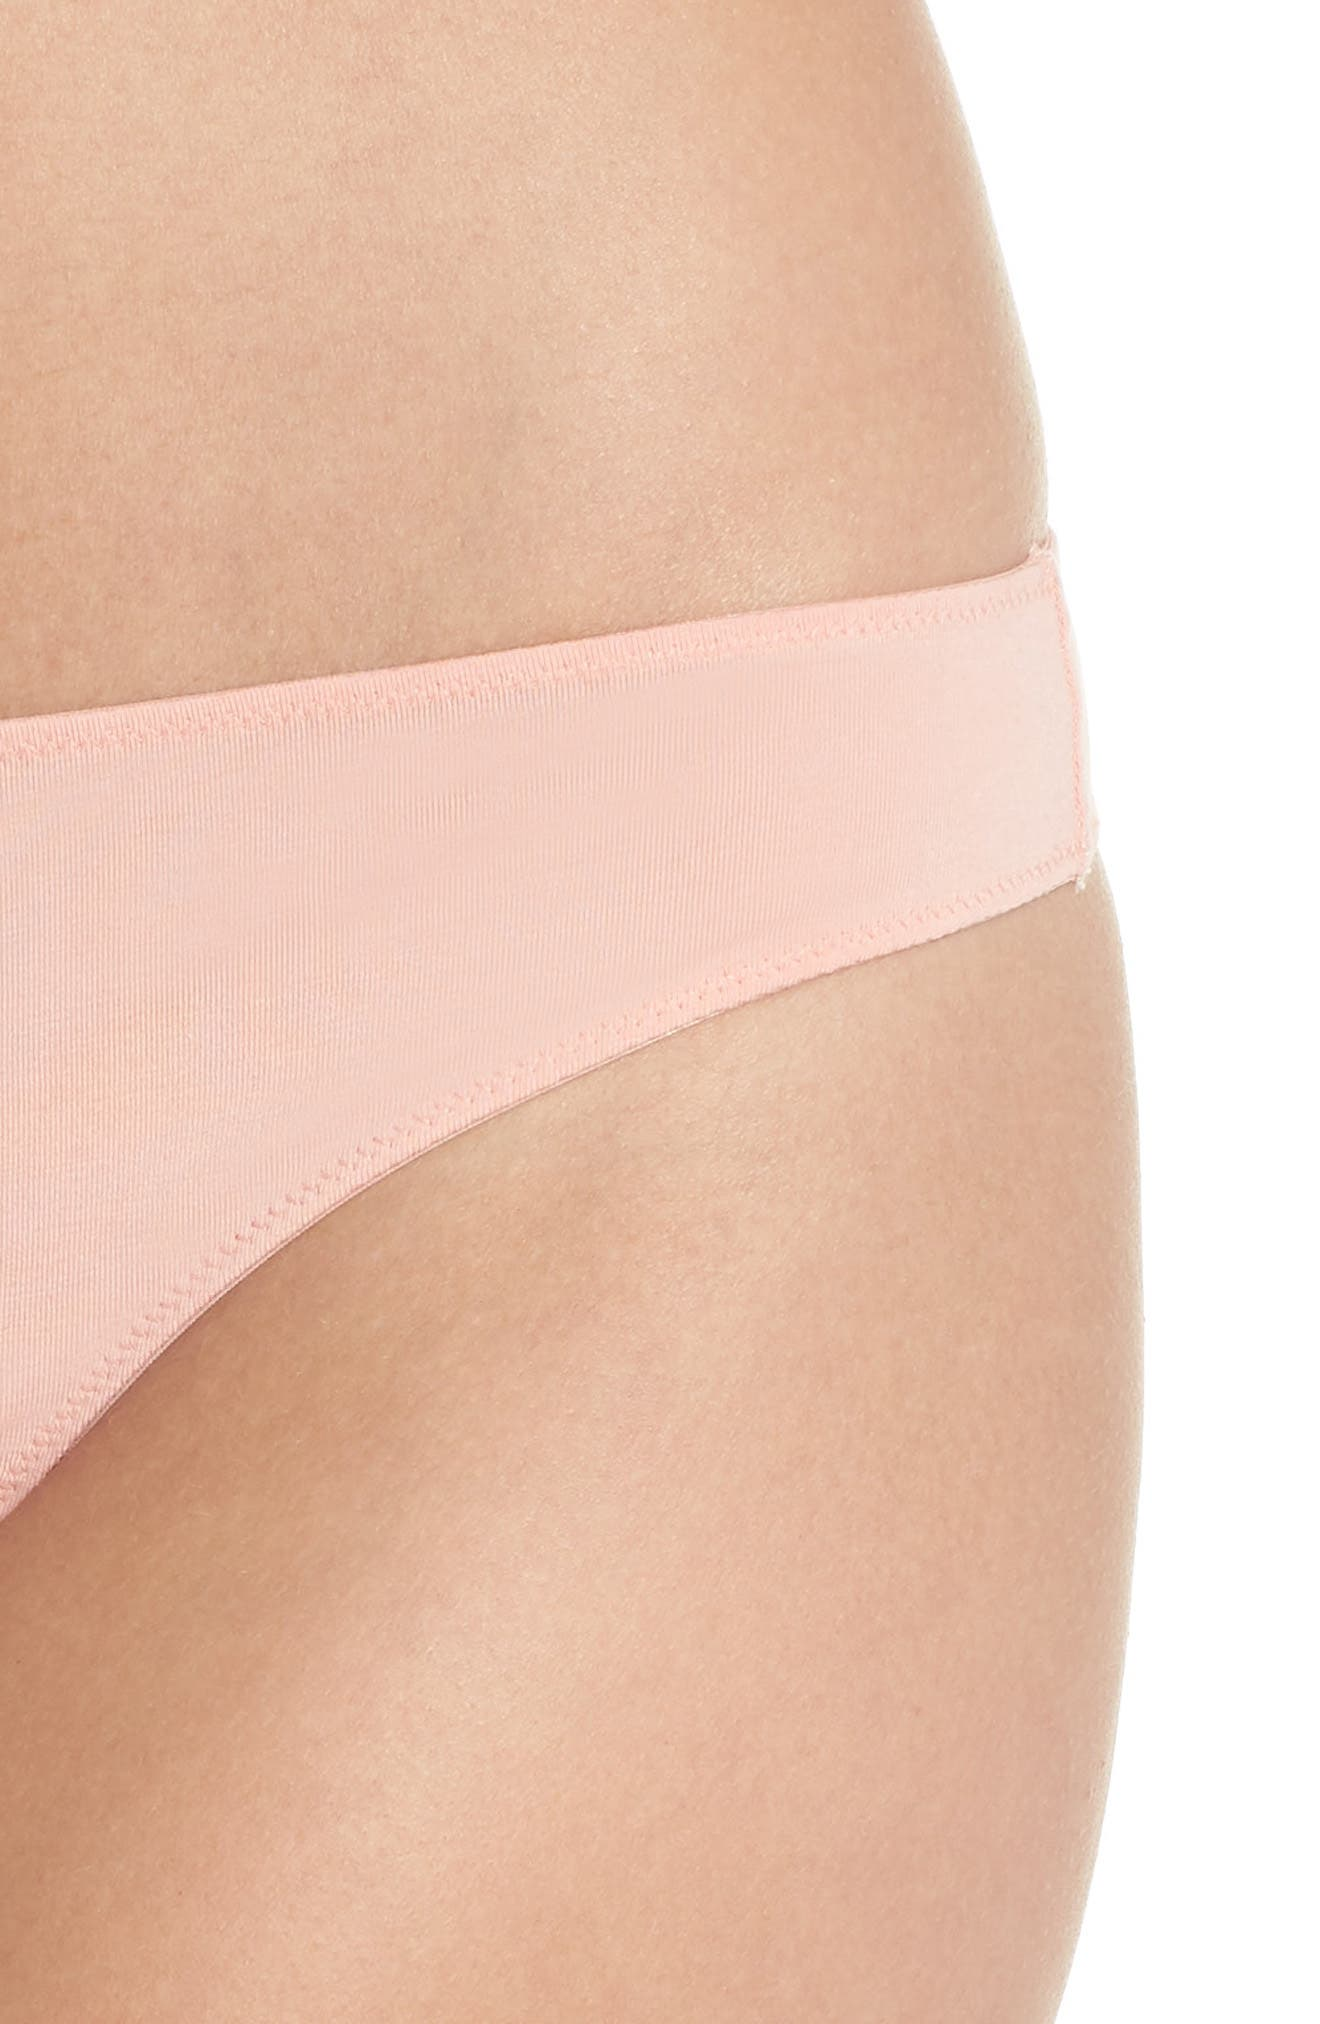 Jersey Thong,                             Alternate thumbnail 4, color,                             BLANCHED CORAL